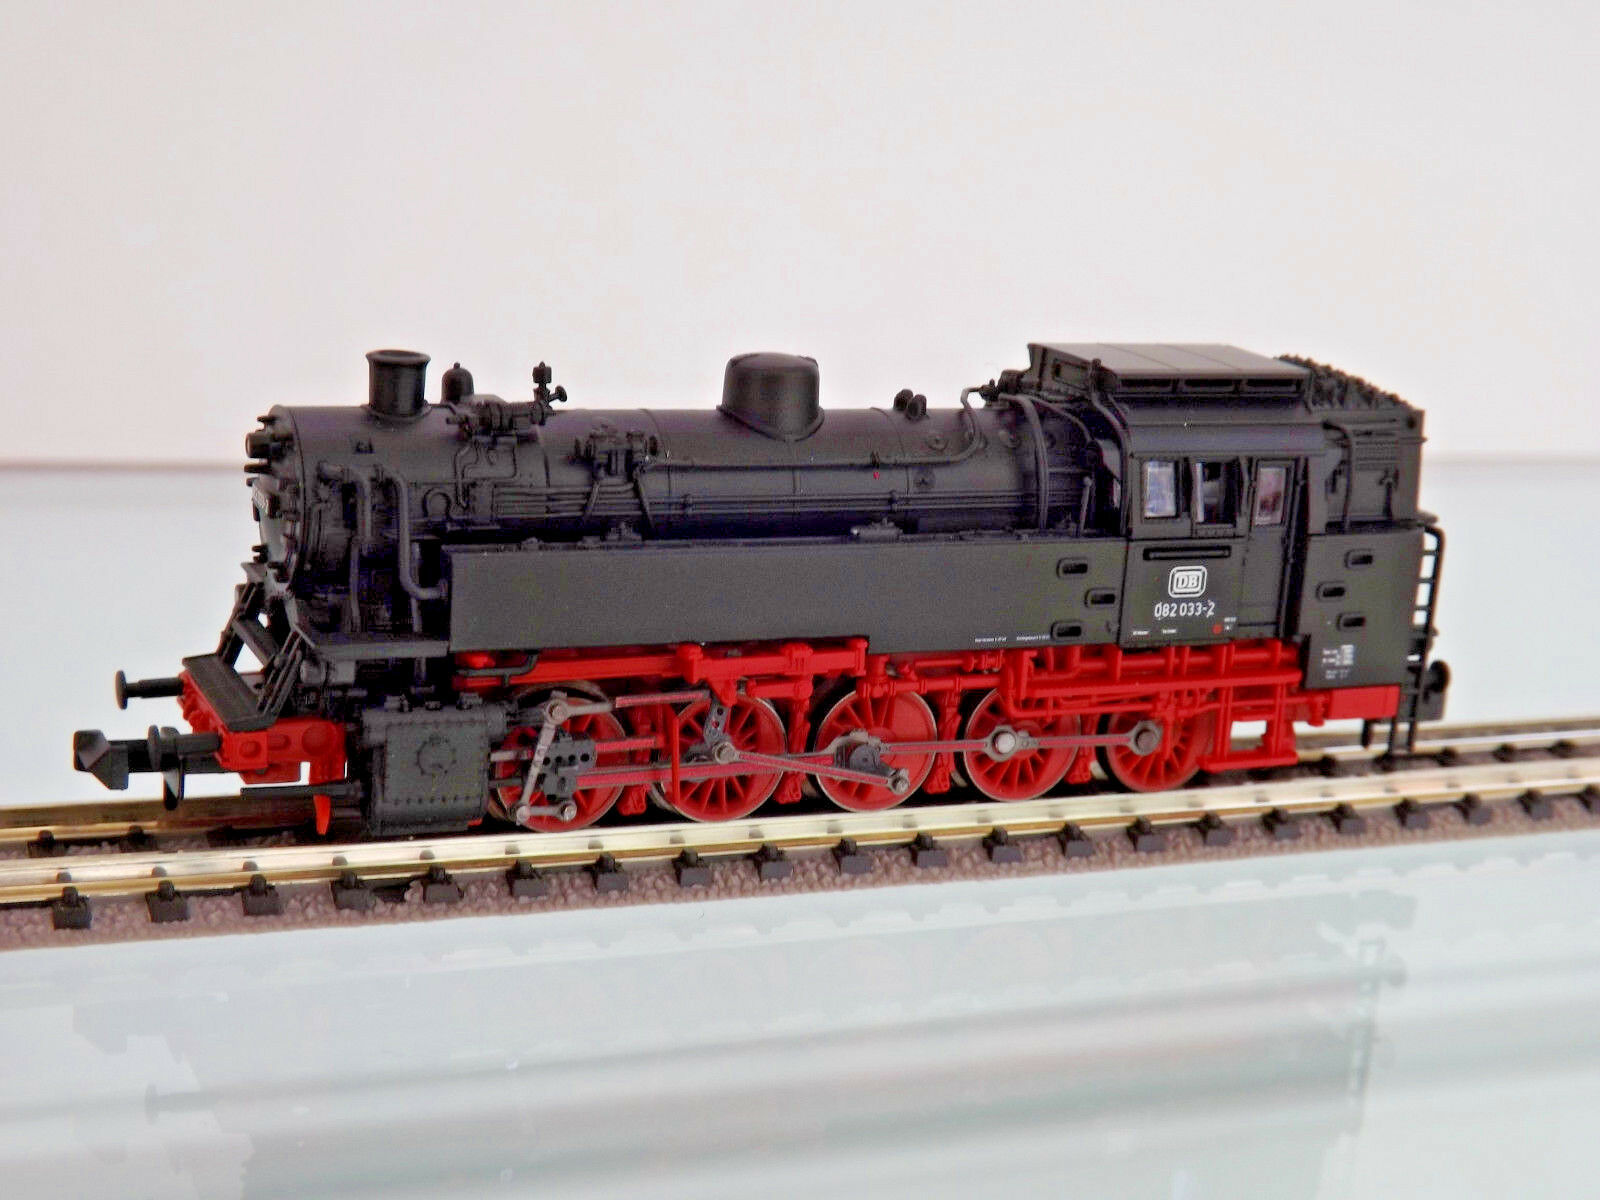 PIKO 40103-Spur N-Locomotiva BR 82 033-2 delle DB, Ep. IV-NUOVO OVP